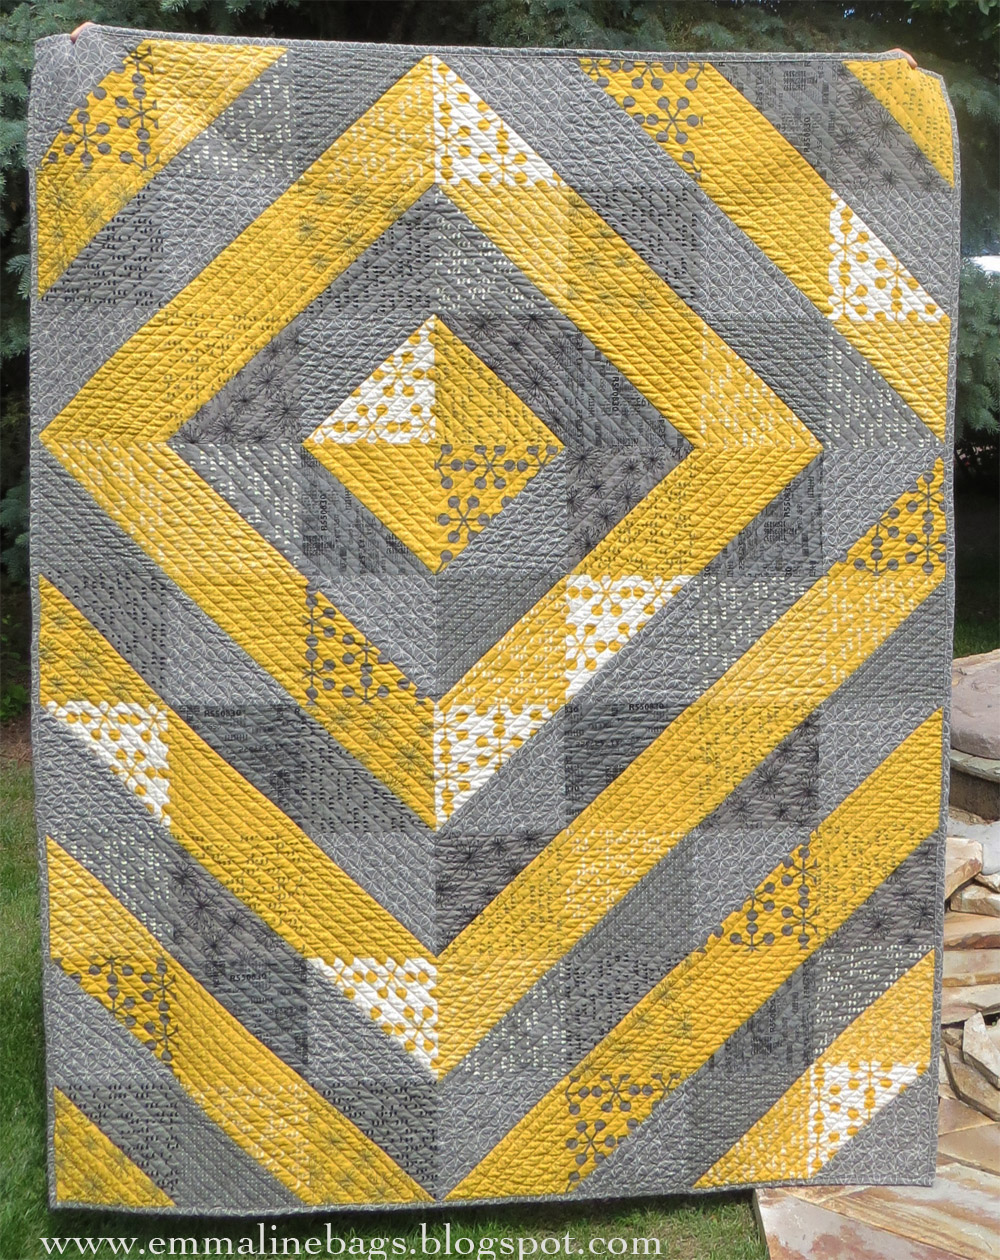 pattern lorysquiltedmemories on pin morelcabin etsy moment patterns quilt dress quilts creations from this by a wedding